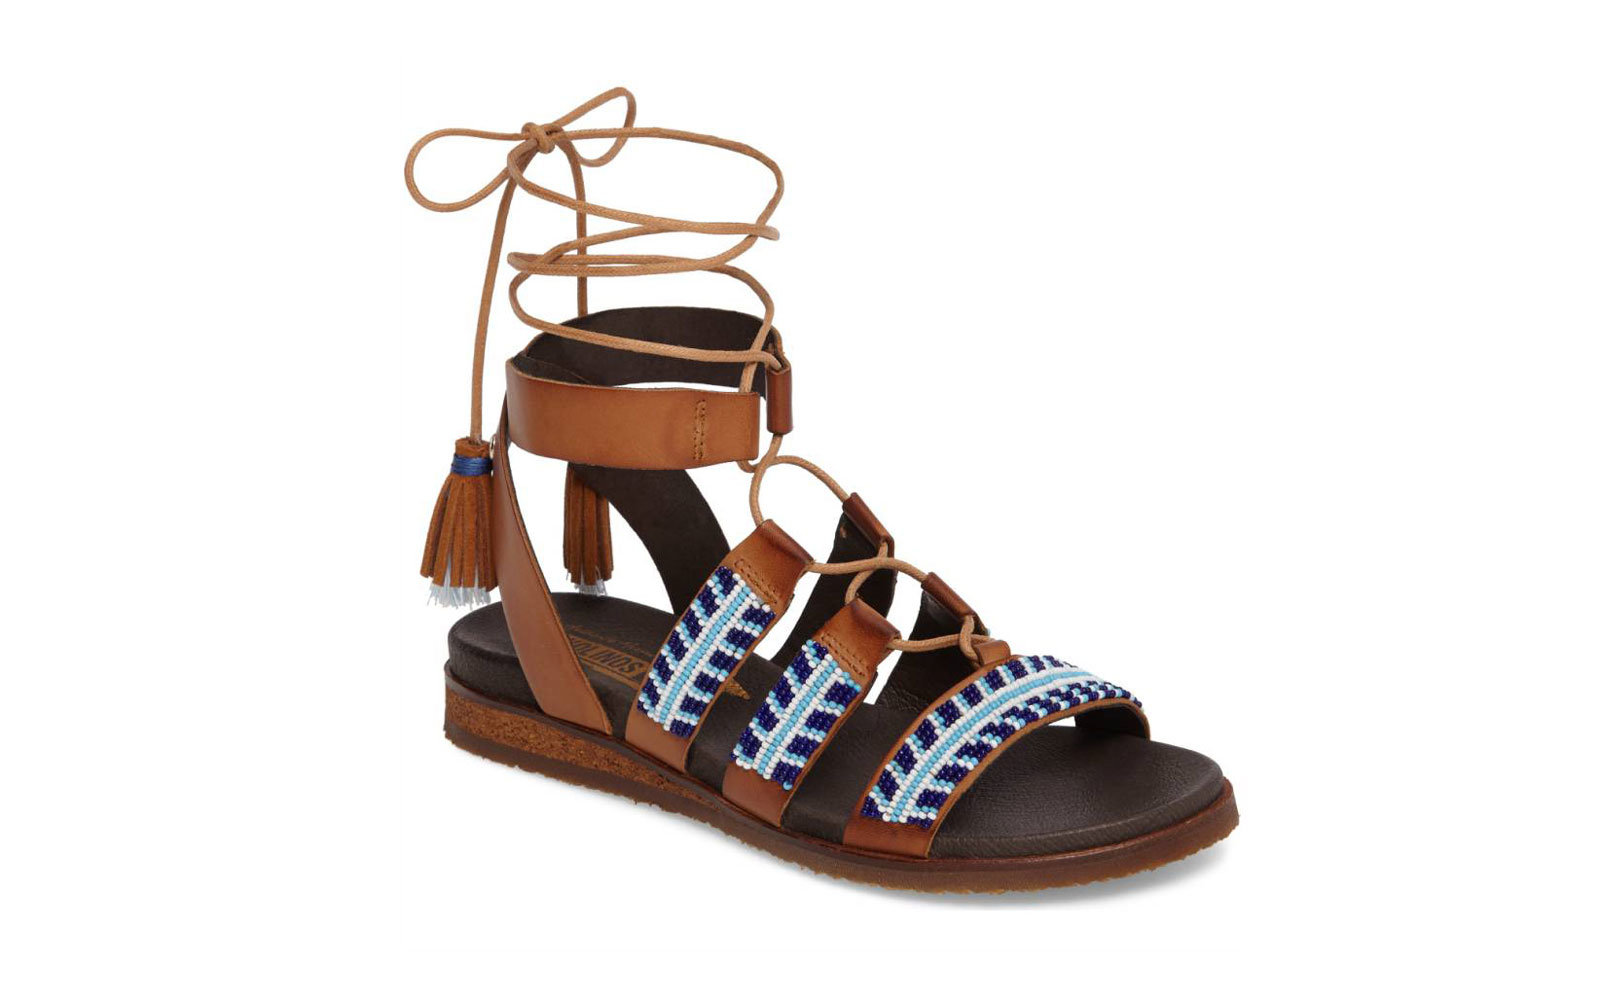 Pikolinos Alcudia Hand Beaded Sandal in Cacao/Olmo Leather